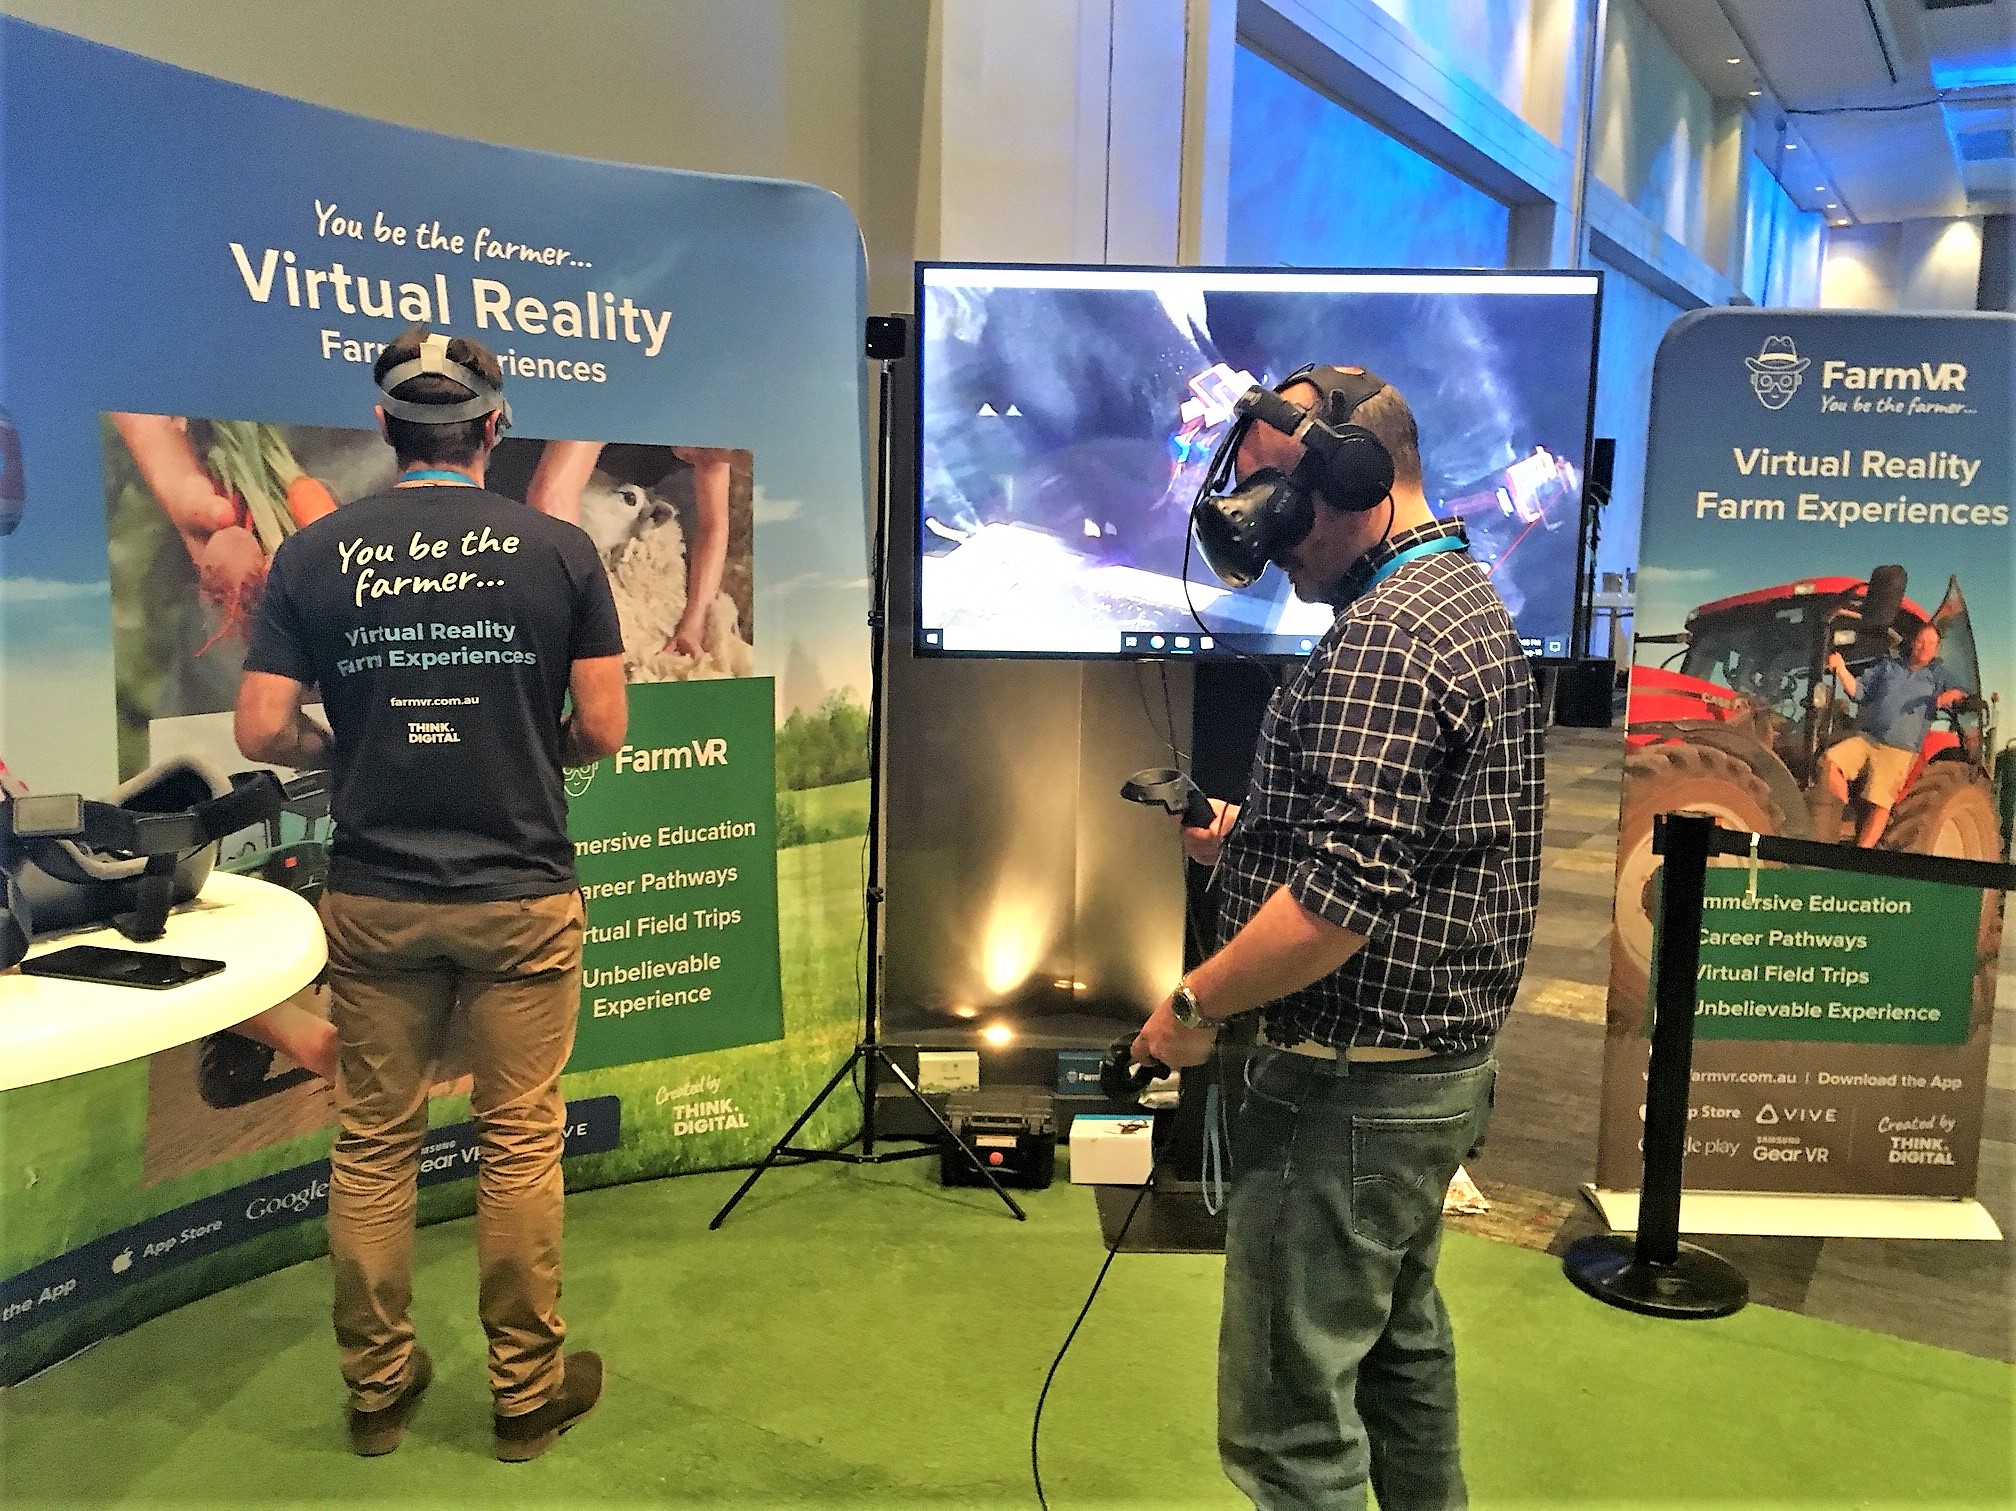 Virtual reality farm experiences were recently showcased at the CSIRO Agcatalyst event last month.